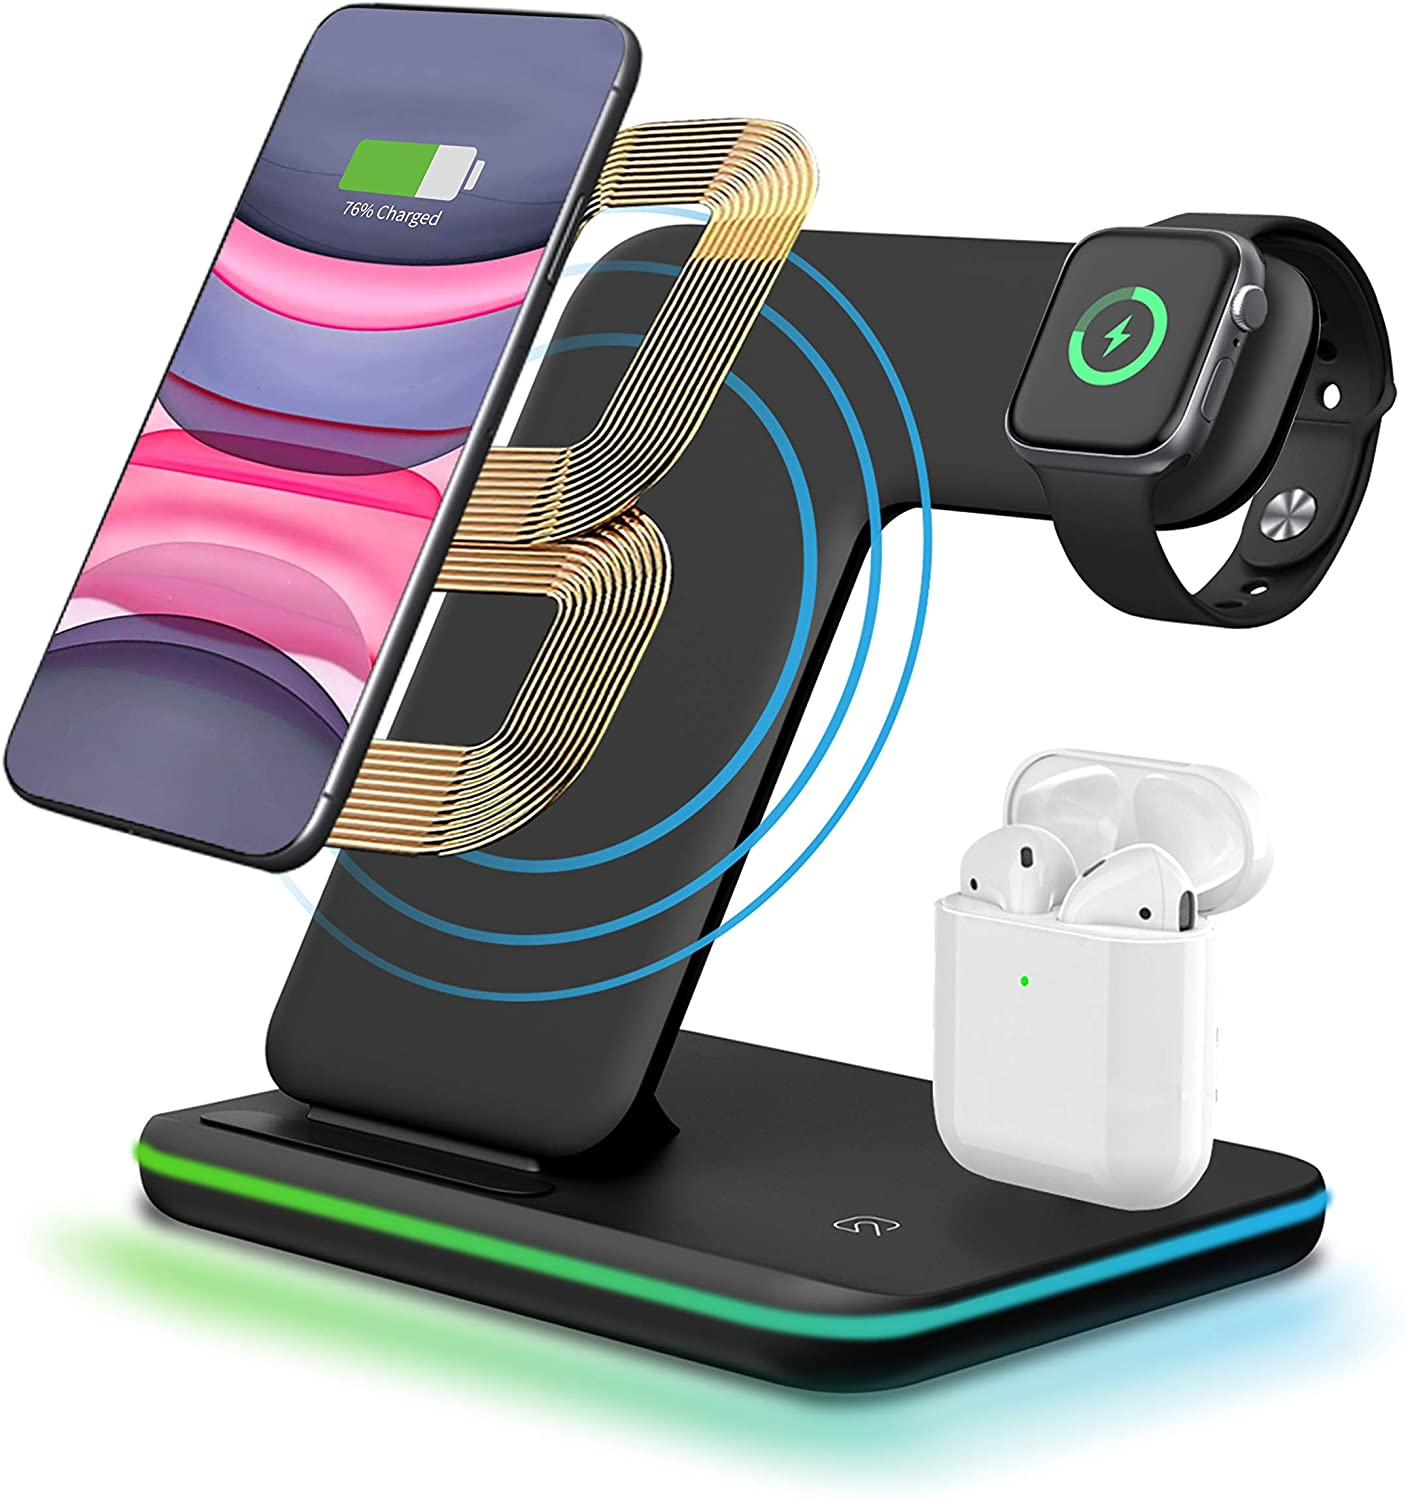 3 in 1 Wireless Charger Stand,CNSL Wireless 15W QI Fast Charging Station,Watch & Earphones Charger Dock with LED Light,Compatible with Airpods iWatch 1/2/3/4,iPhone 8/X/XR,Samsung S10/S9,etc.(Black)